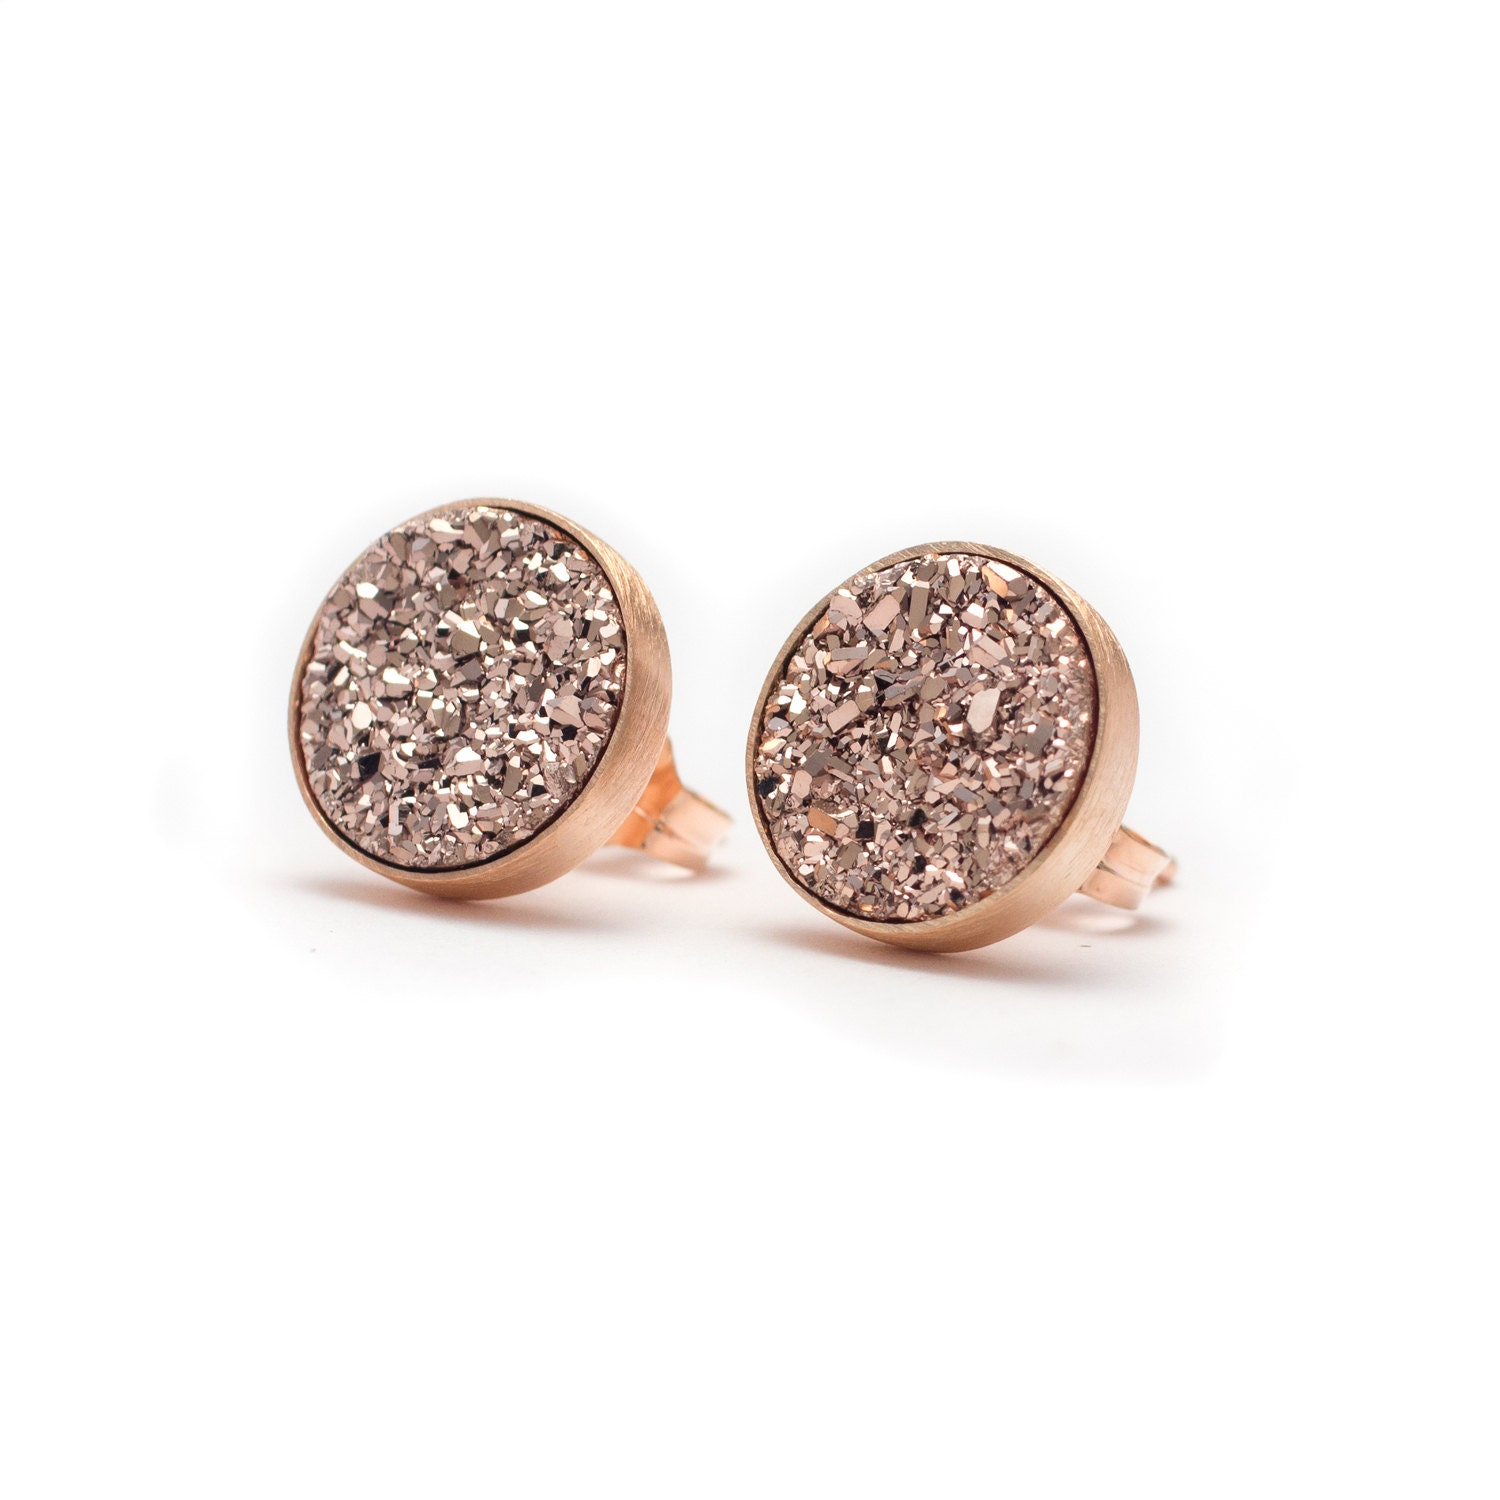 Rose Gold in Rose Gold Druzy Quartz Stud Earrings Druzy